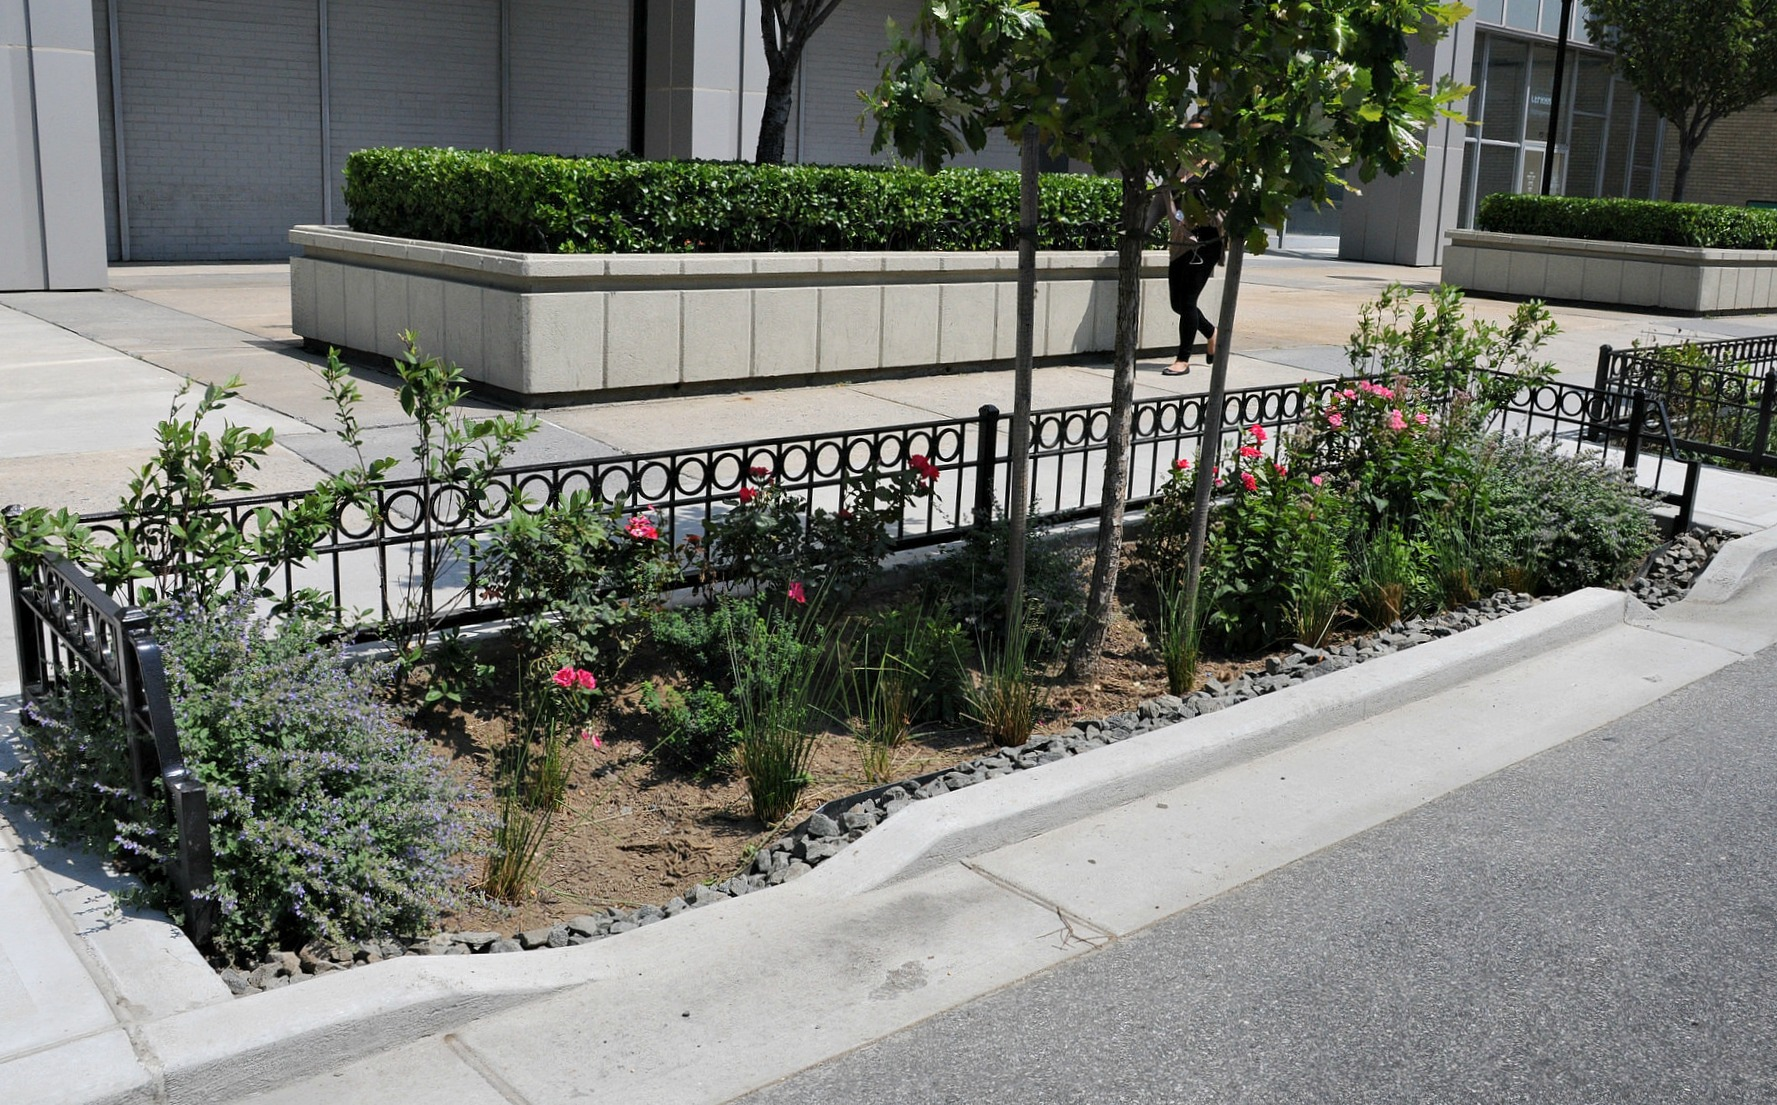 Bioswales face backlash from city residents for being eyesores